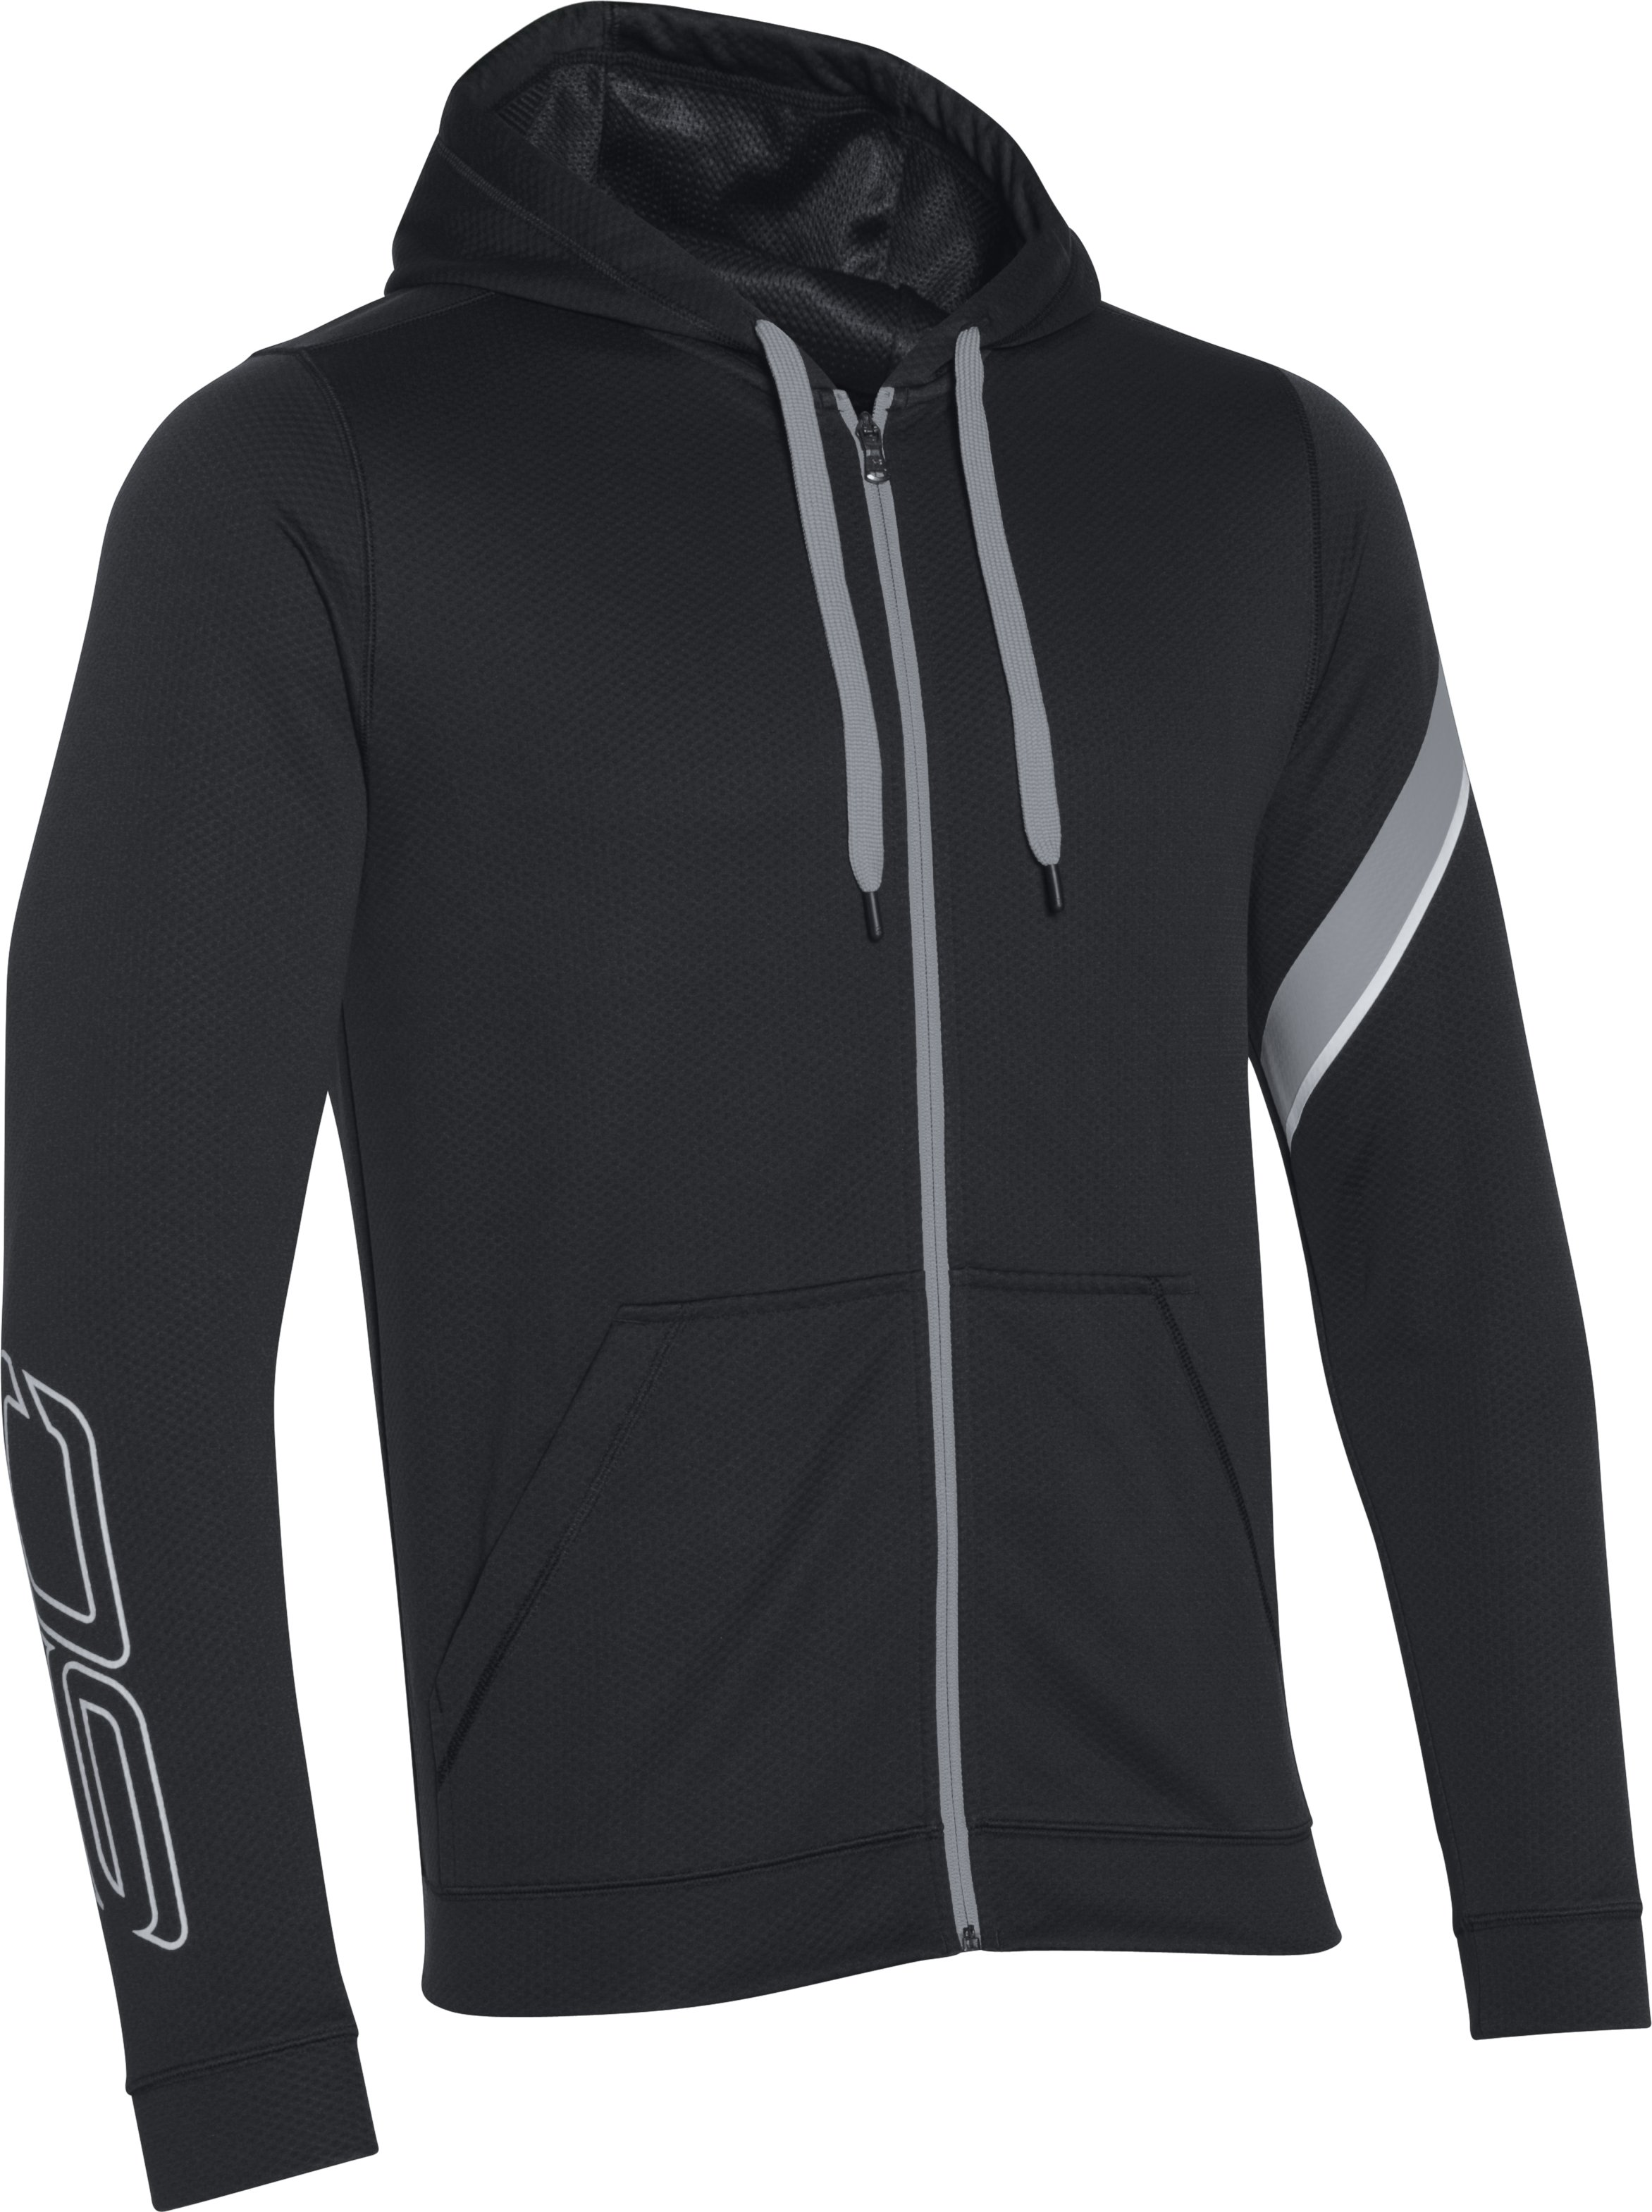 Men's SC30 Essentials Zip Hoodie, Black , undefined